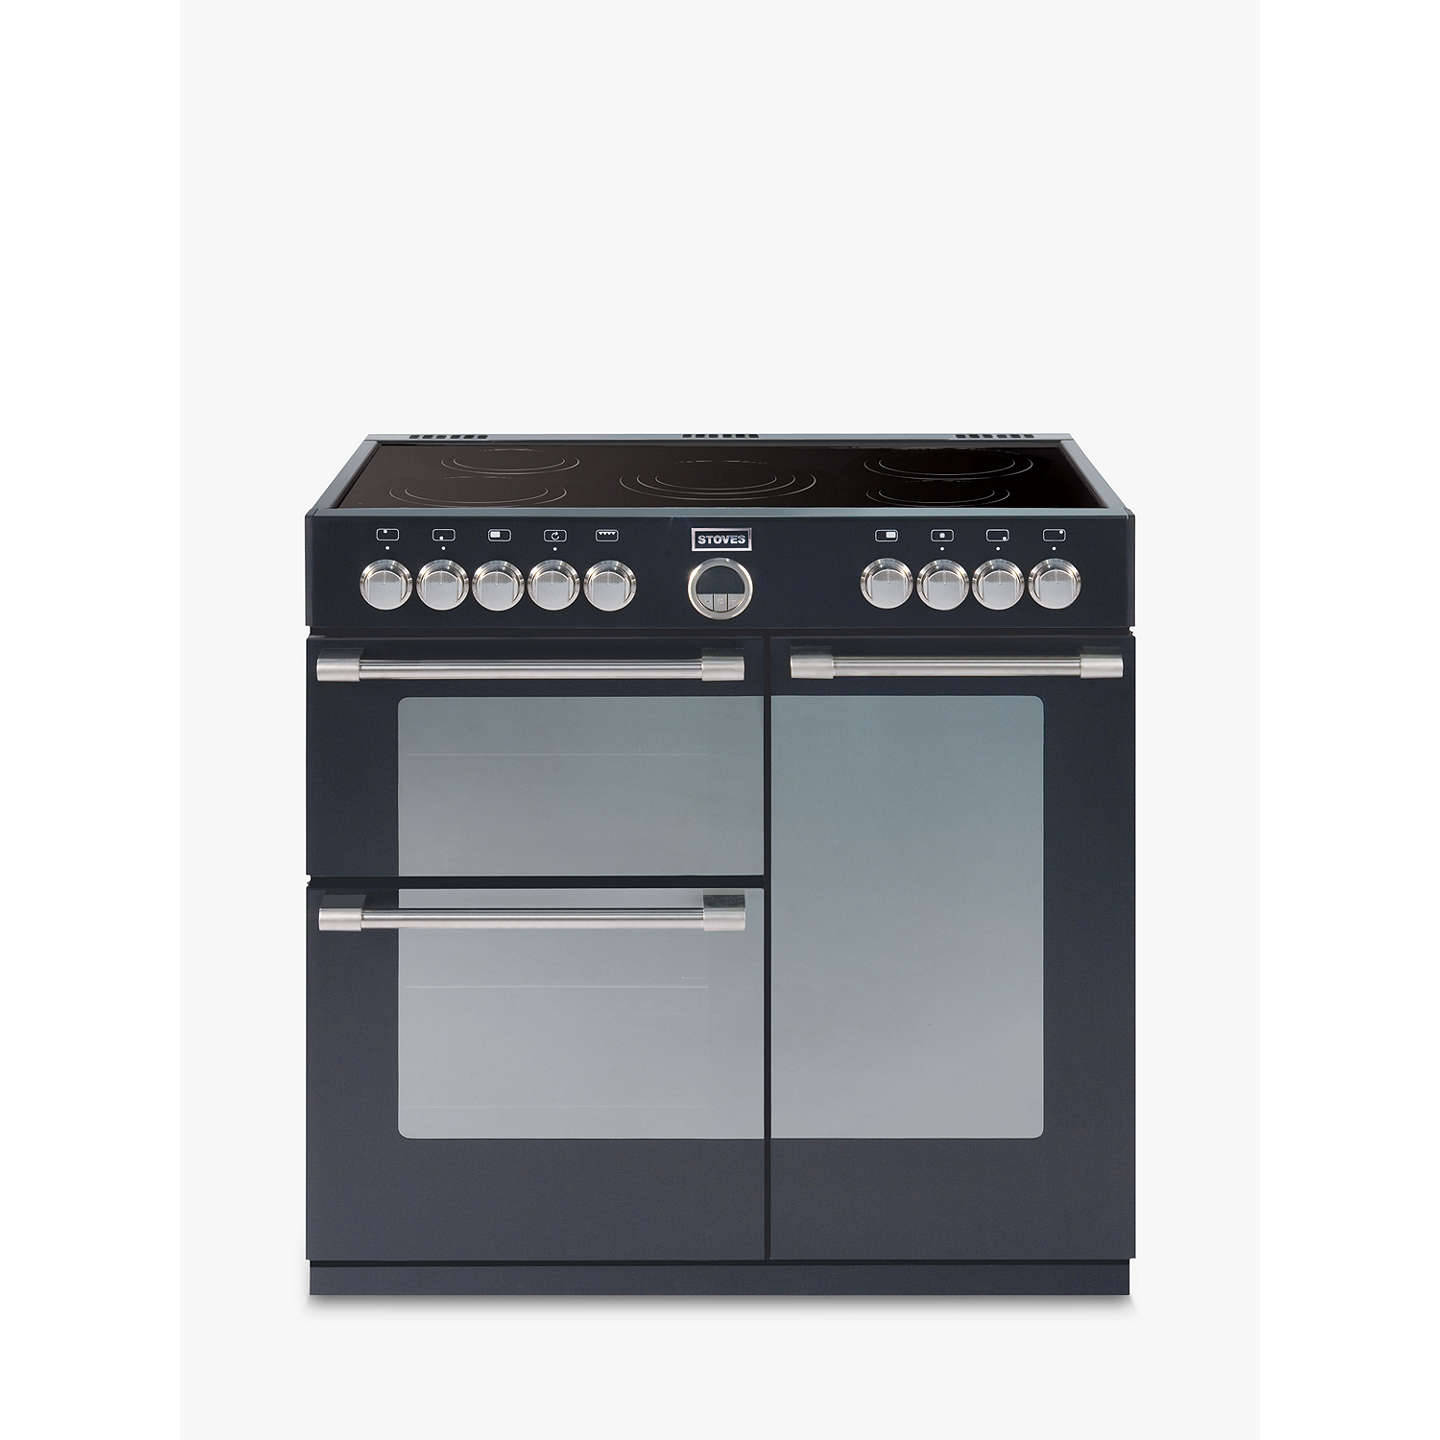 BuyStoves Sterling 900E Electric Range Cooker, Black Online at johnlewis.com